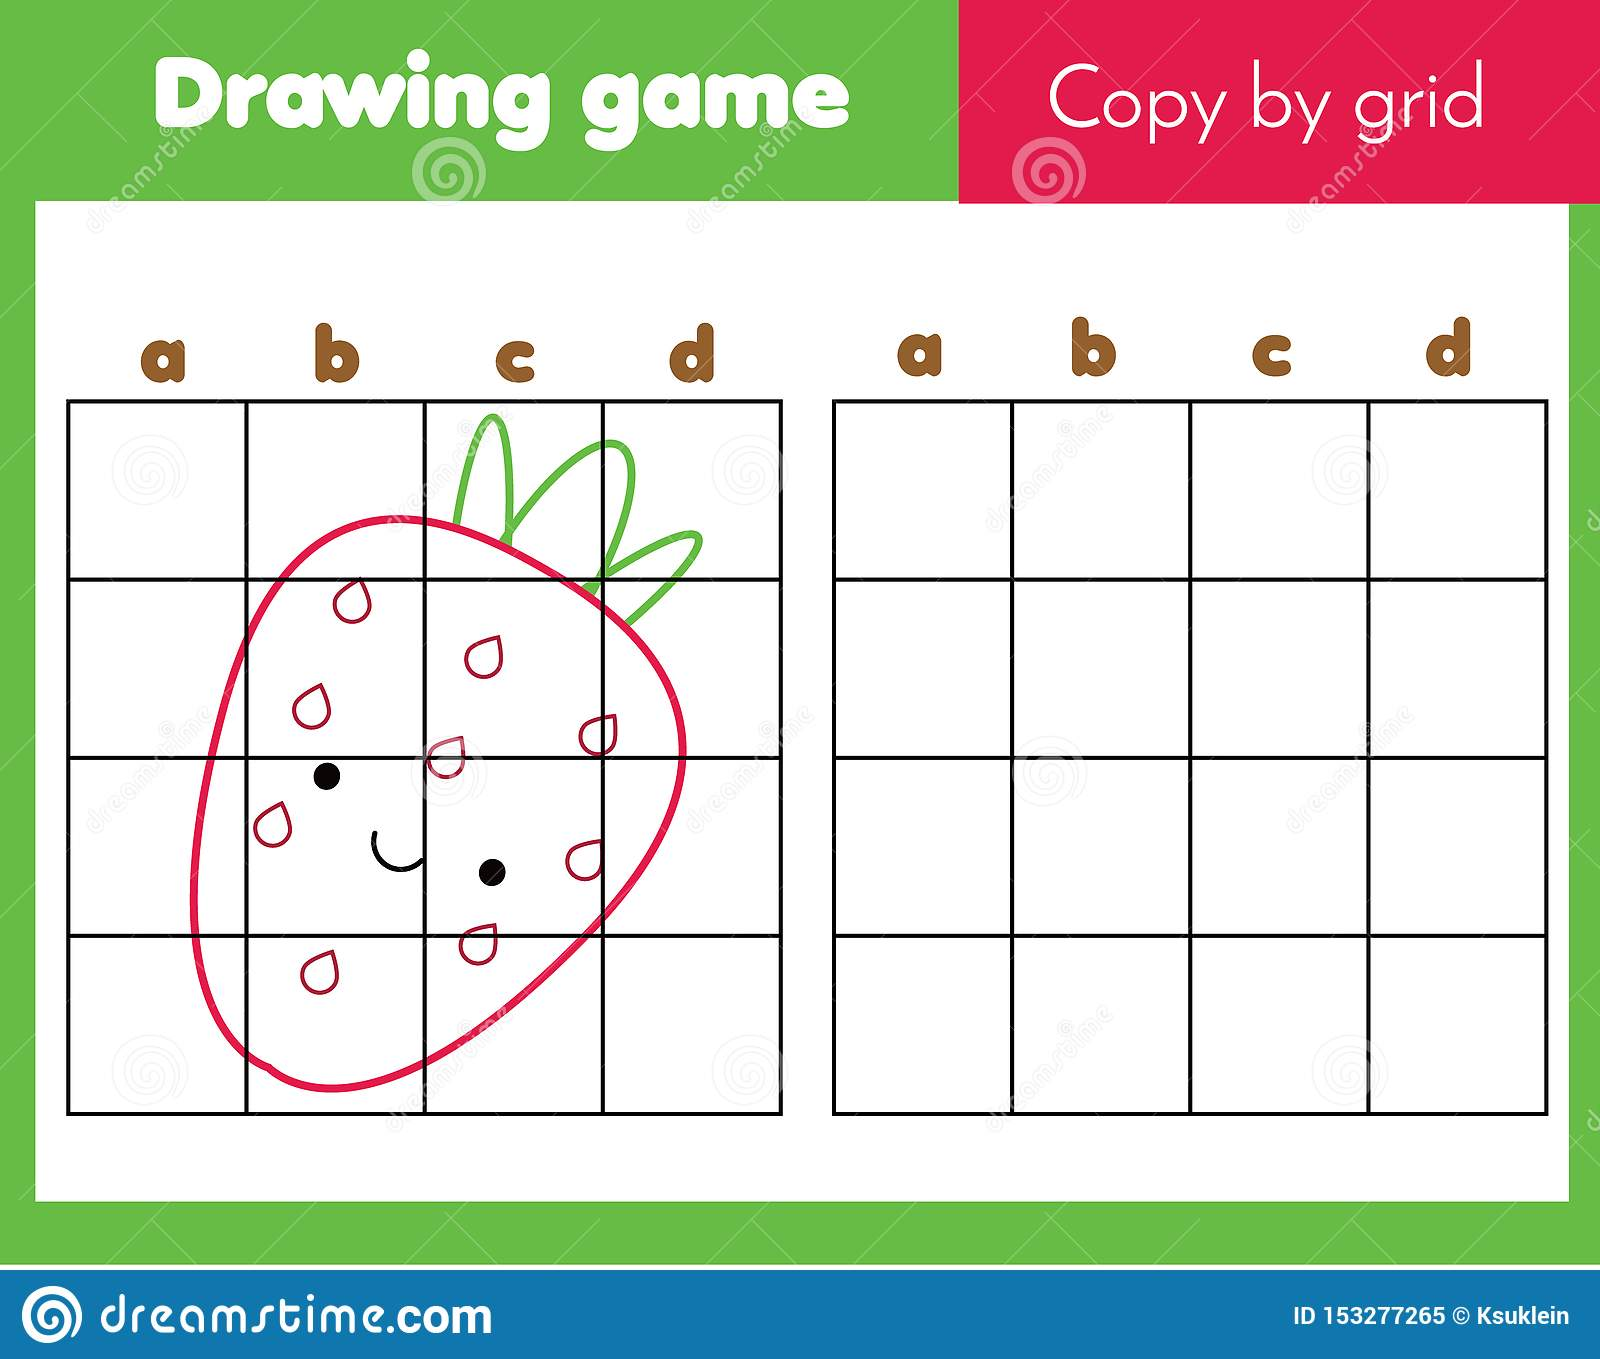 Starwberry Grid Copy Worksheet Educational Children Game